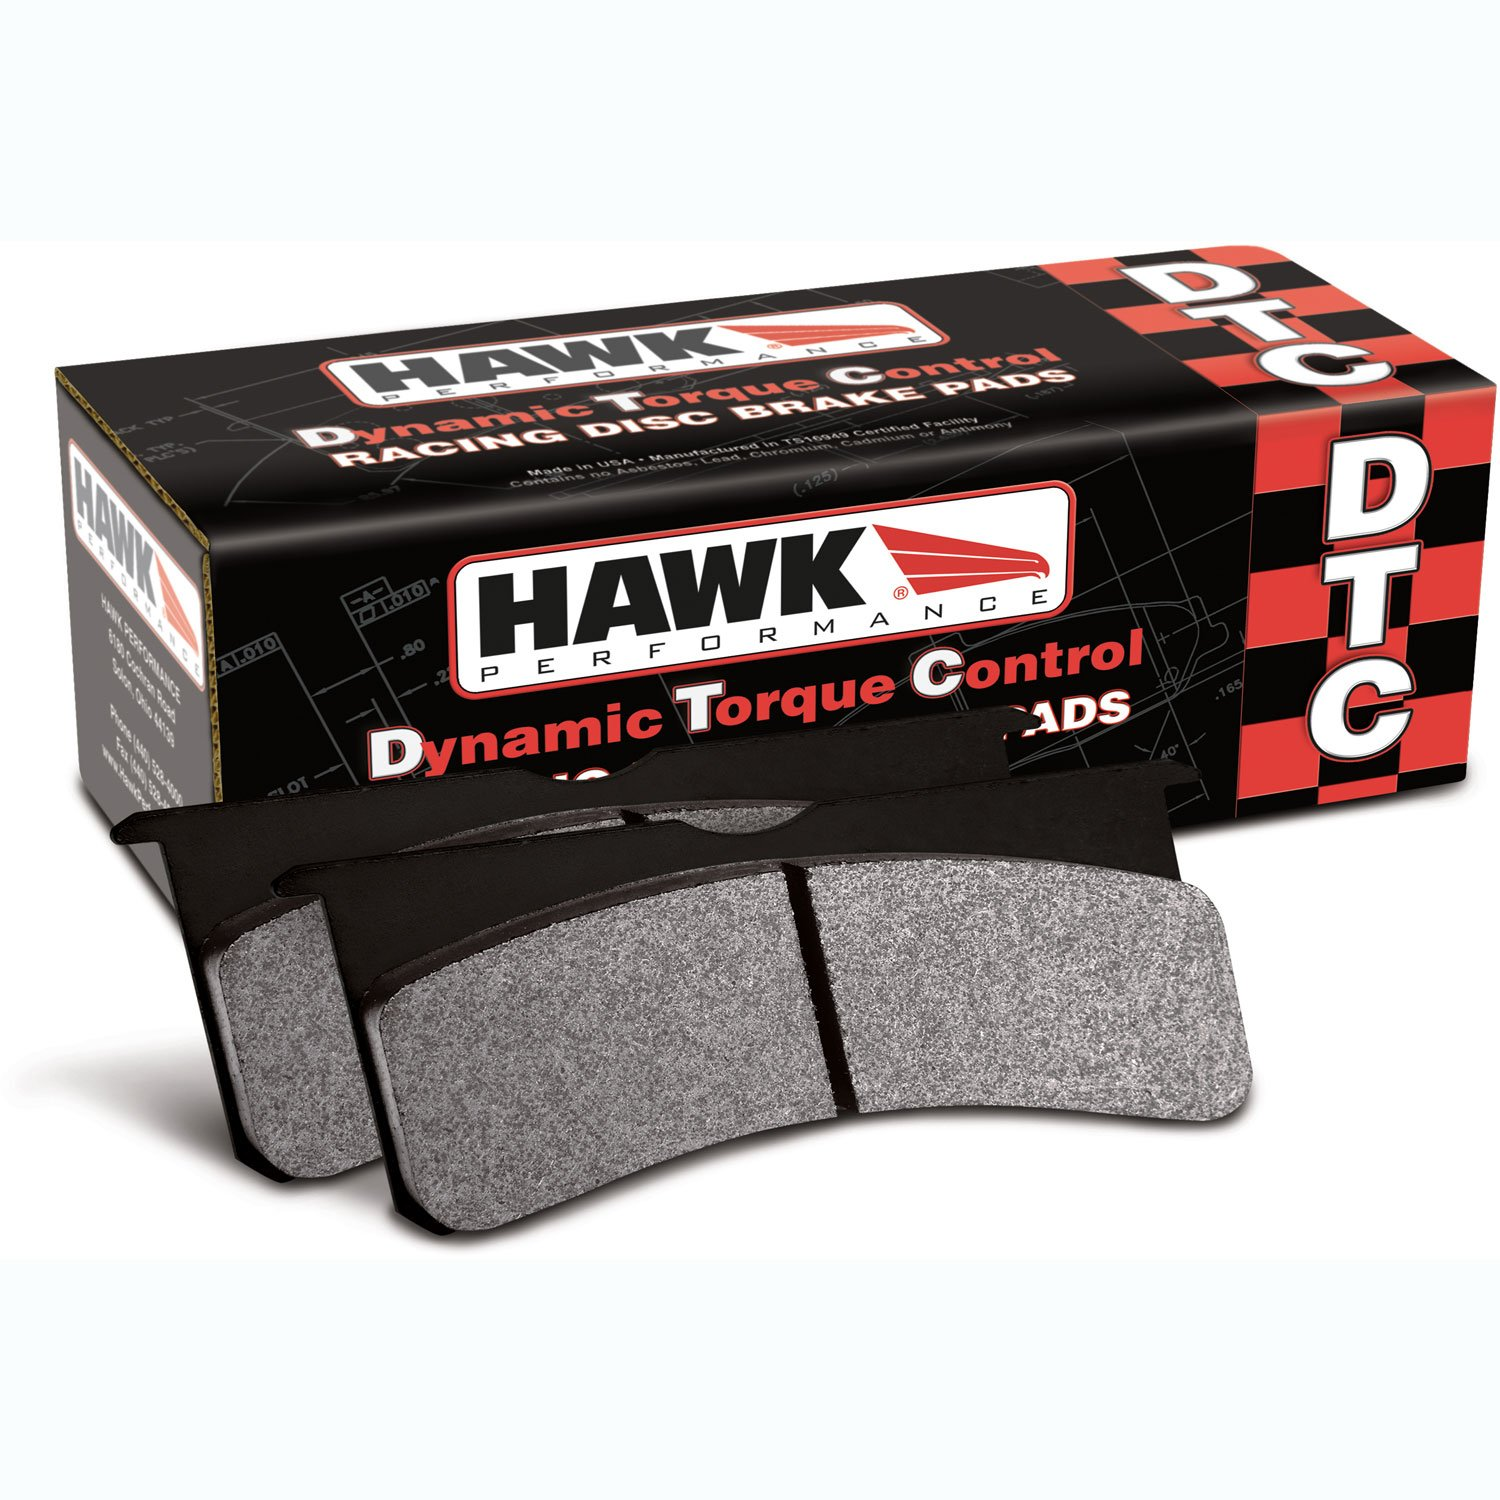 Hawk Performance HB542W.600 Auto Part